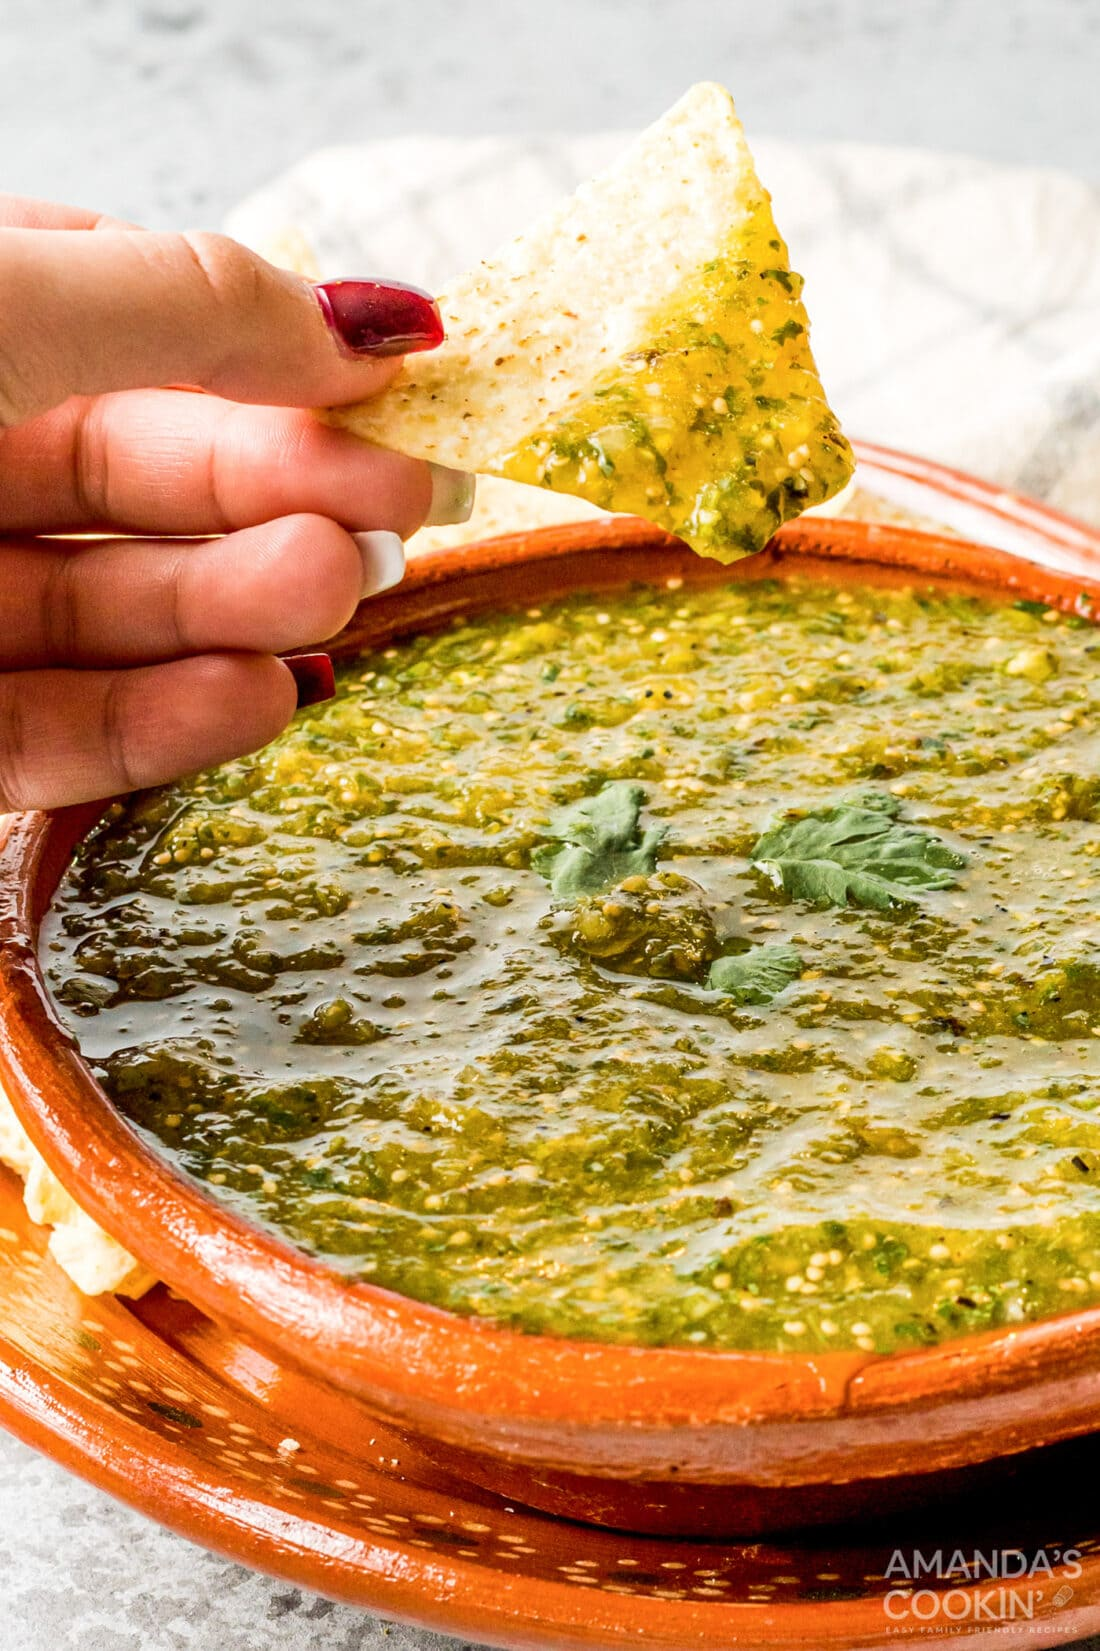 woman's hand scooping green salsa with a tortilla chip